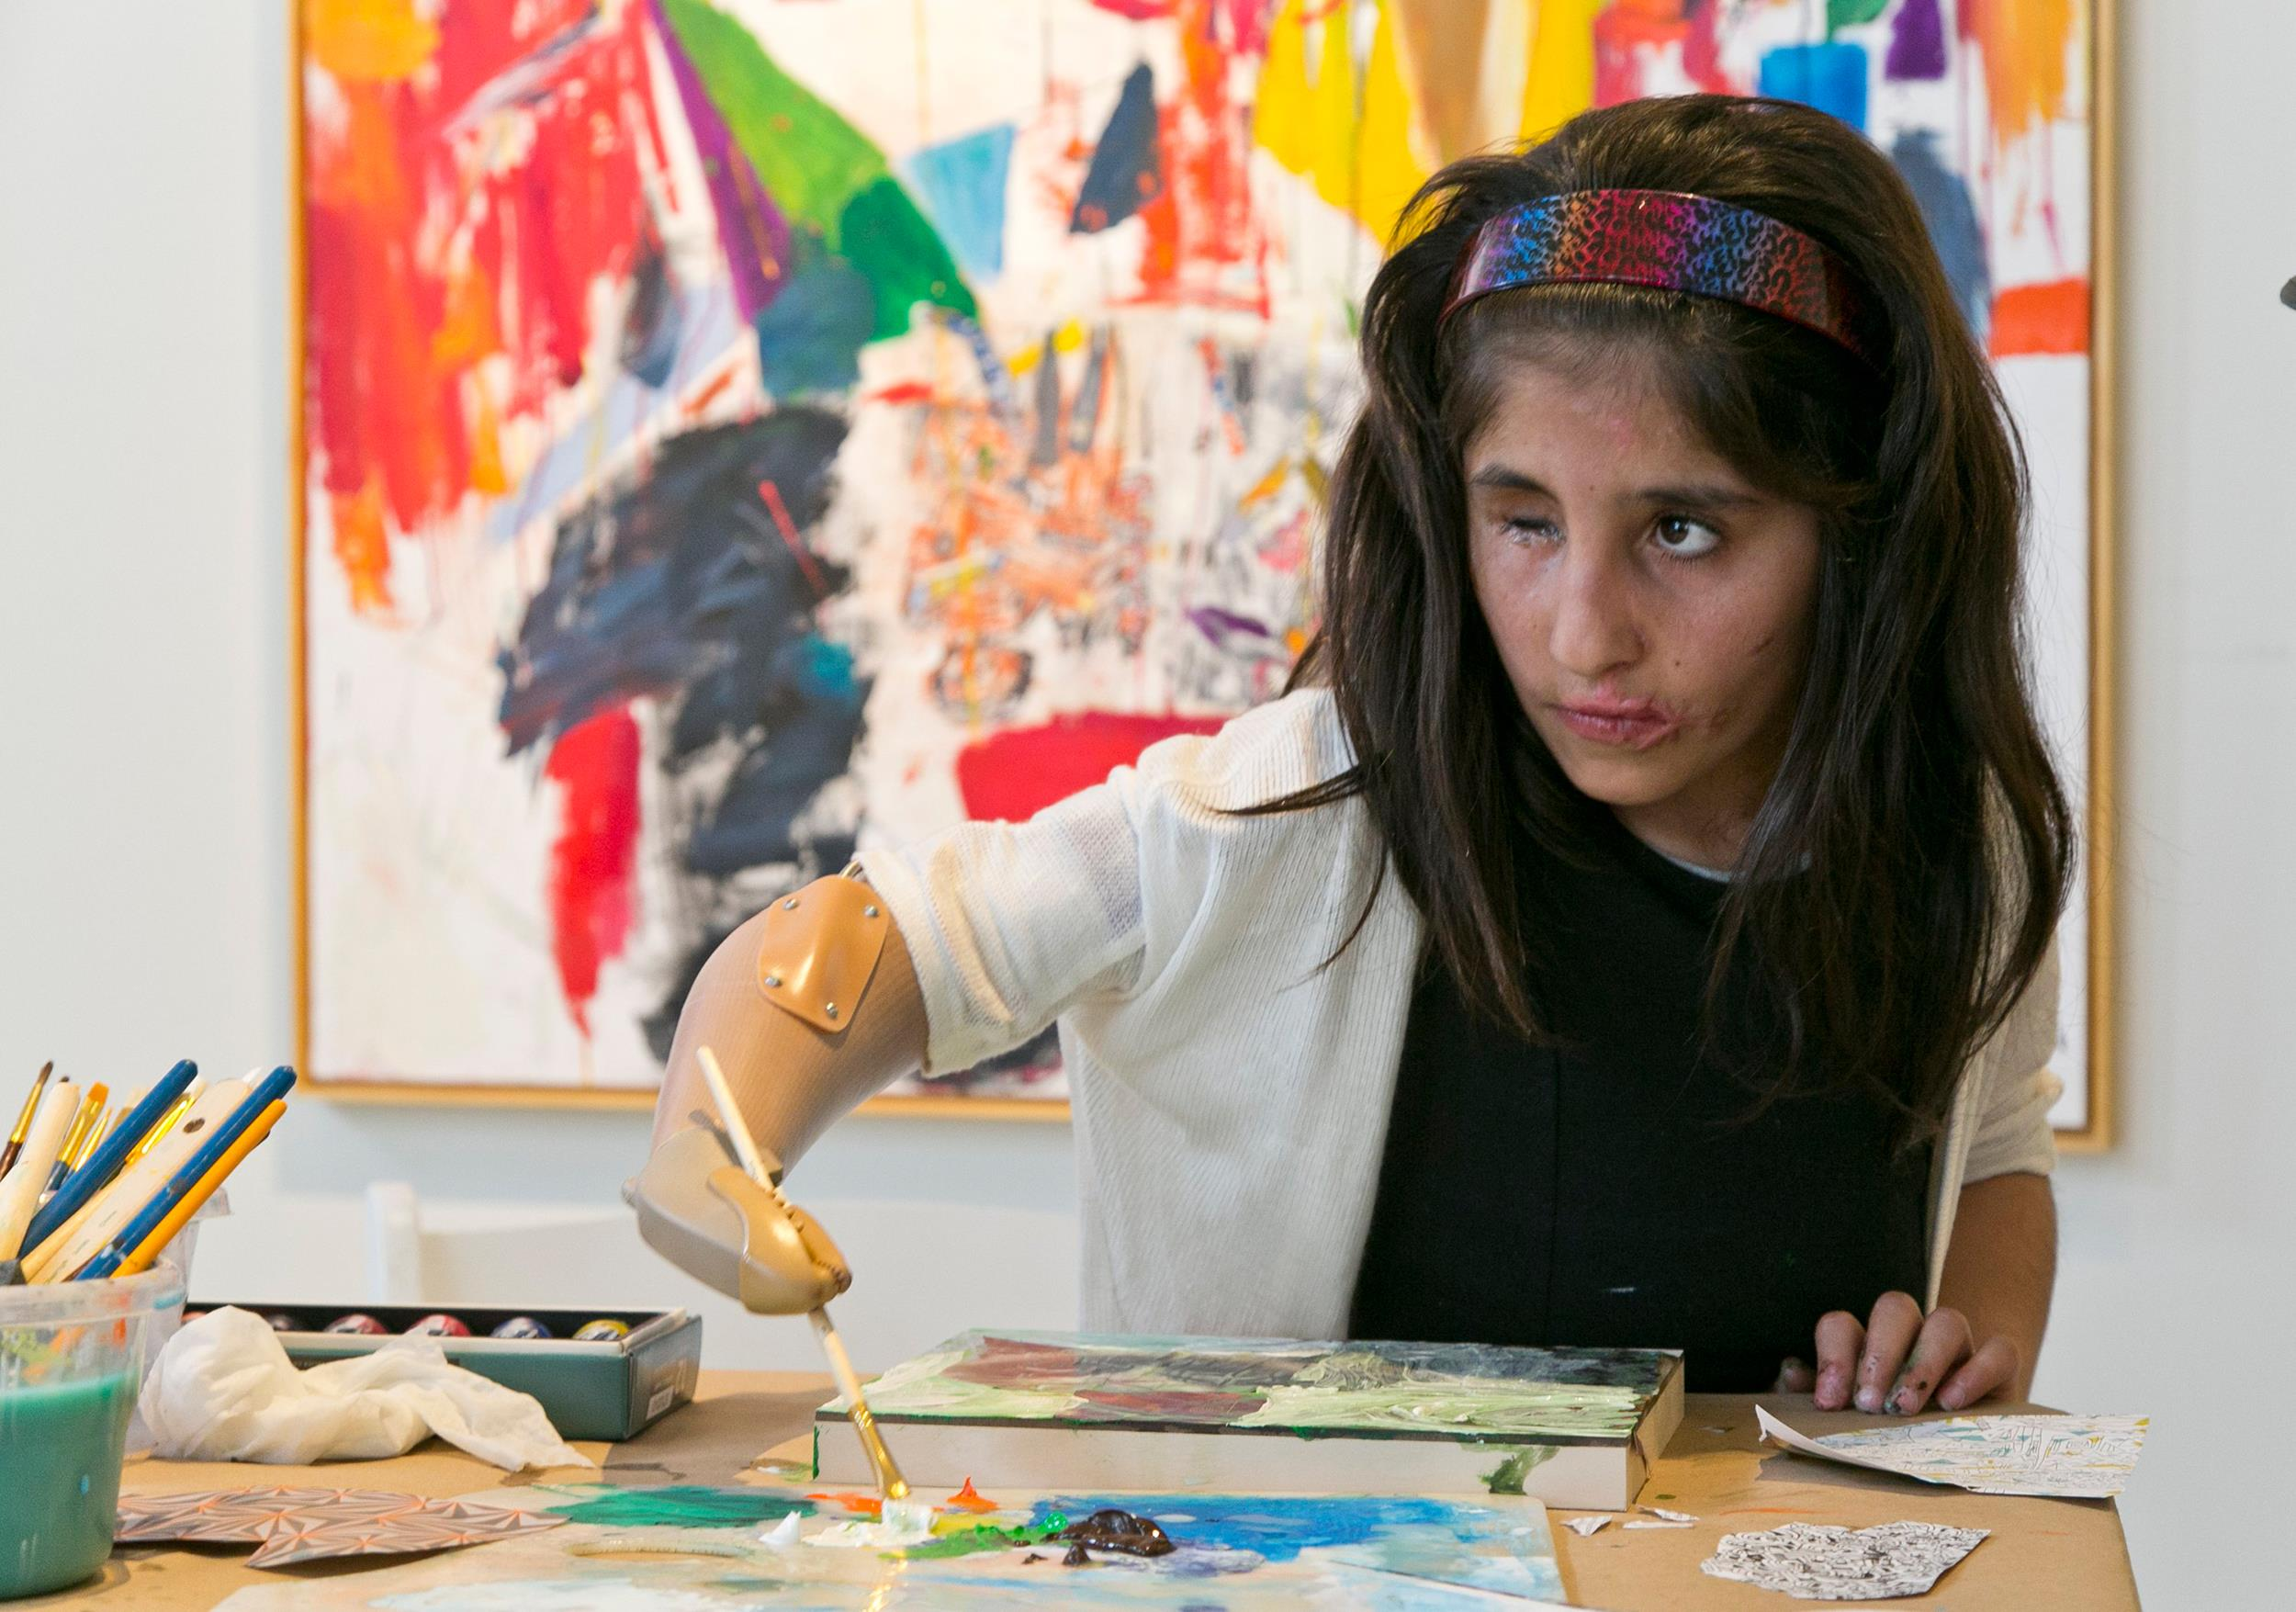 Image: Afghan war victim Shah Bibi Tarakhail uses her new prosthetic arm to paint during a private session with artist Dayvd Whaley in April